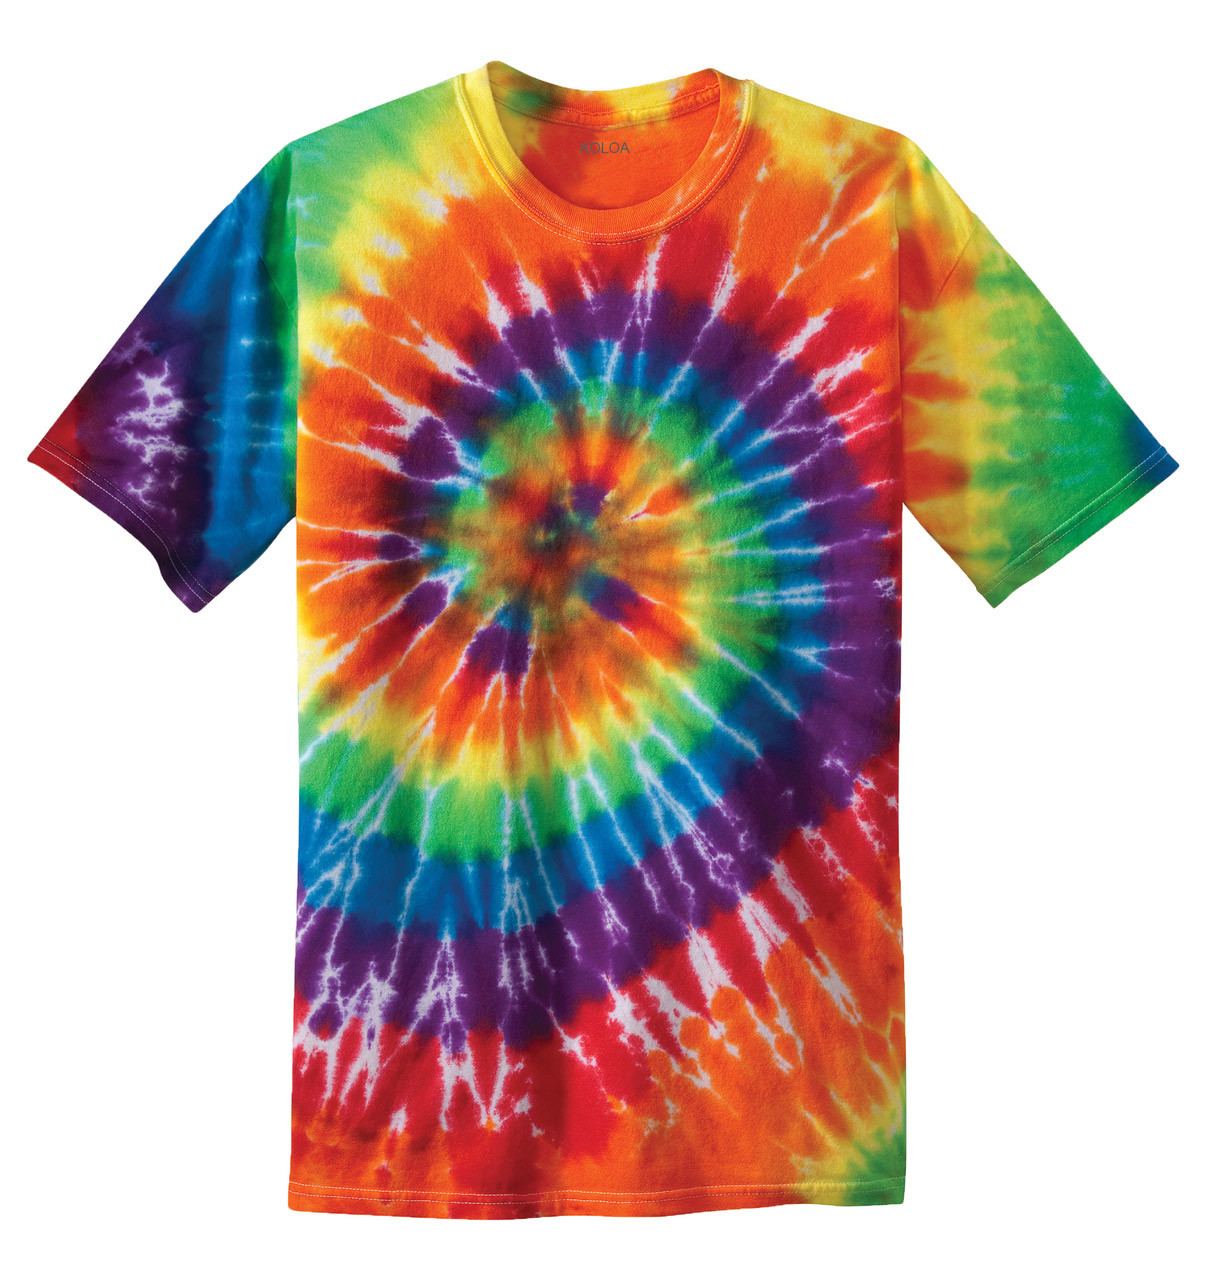 4832faa58 Koloa Surf Colorful Tie-Dye T-Shirts in 19 Colors. Sizes: S-4XL